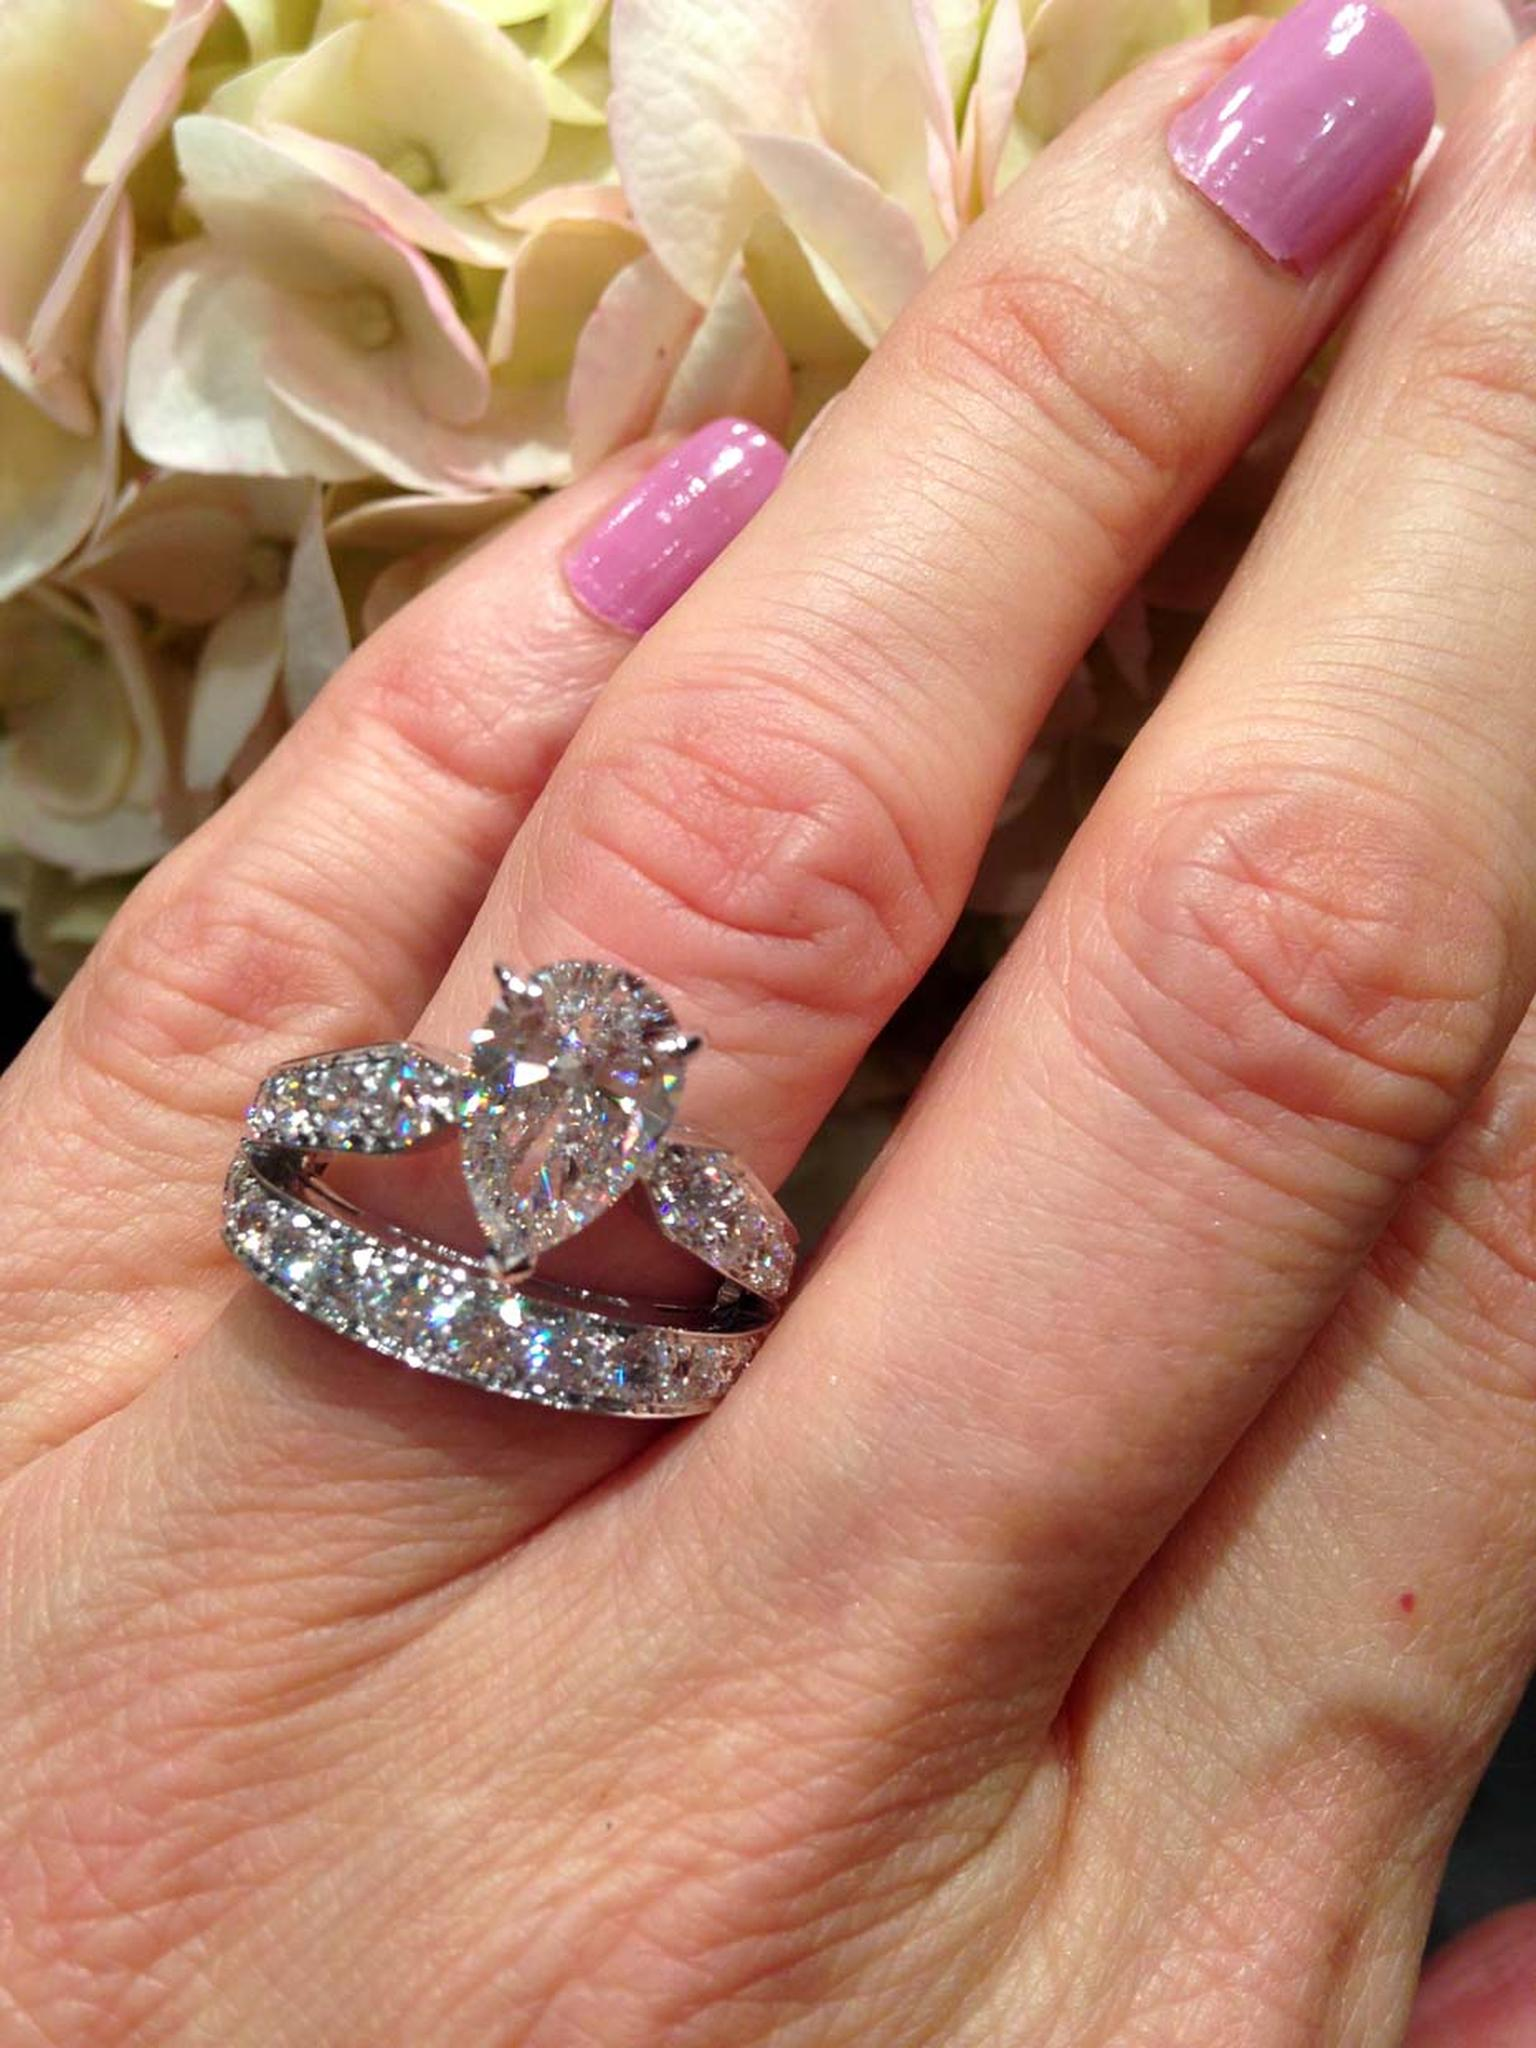 Chaumet Josephine diamond engagement ring with 2.00ct pear-cut diamond (£93,800).